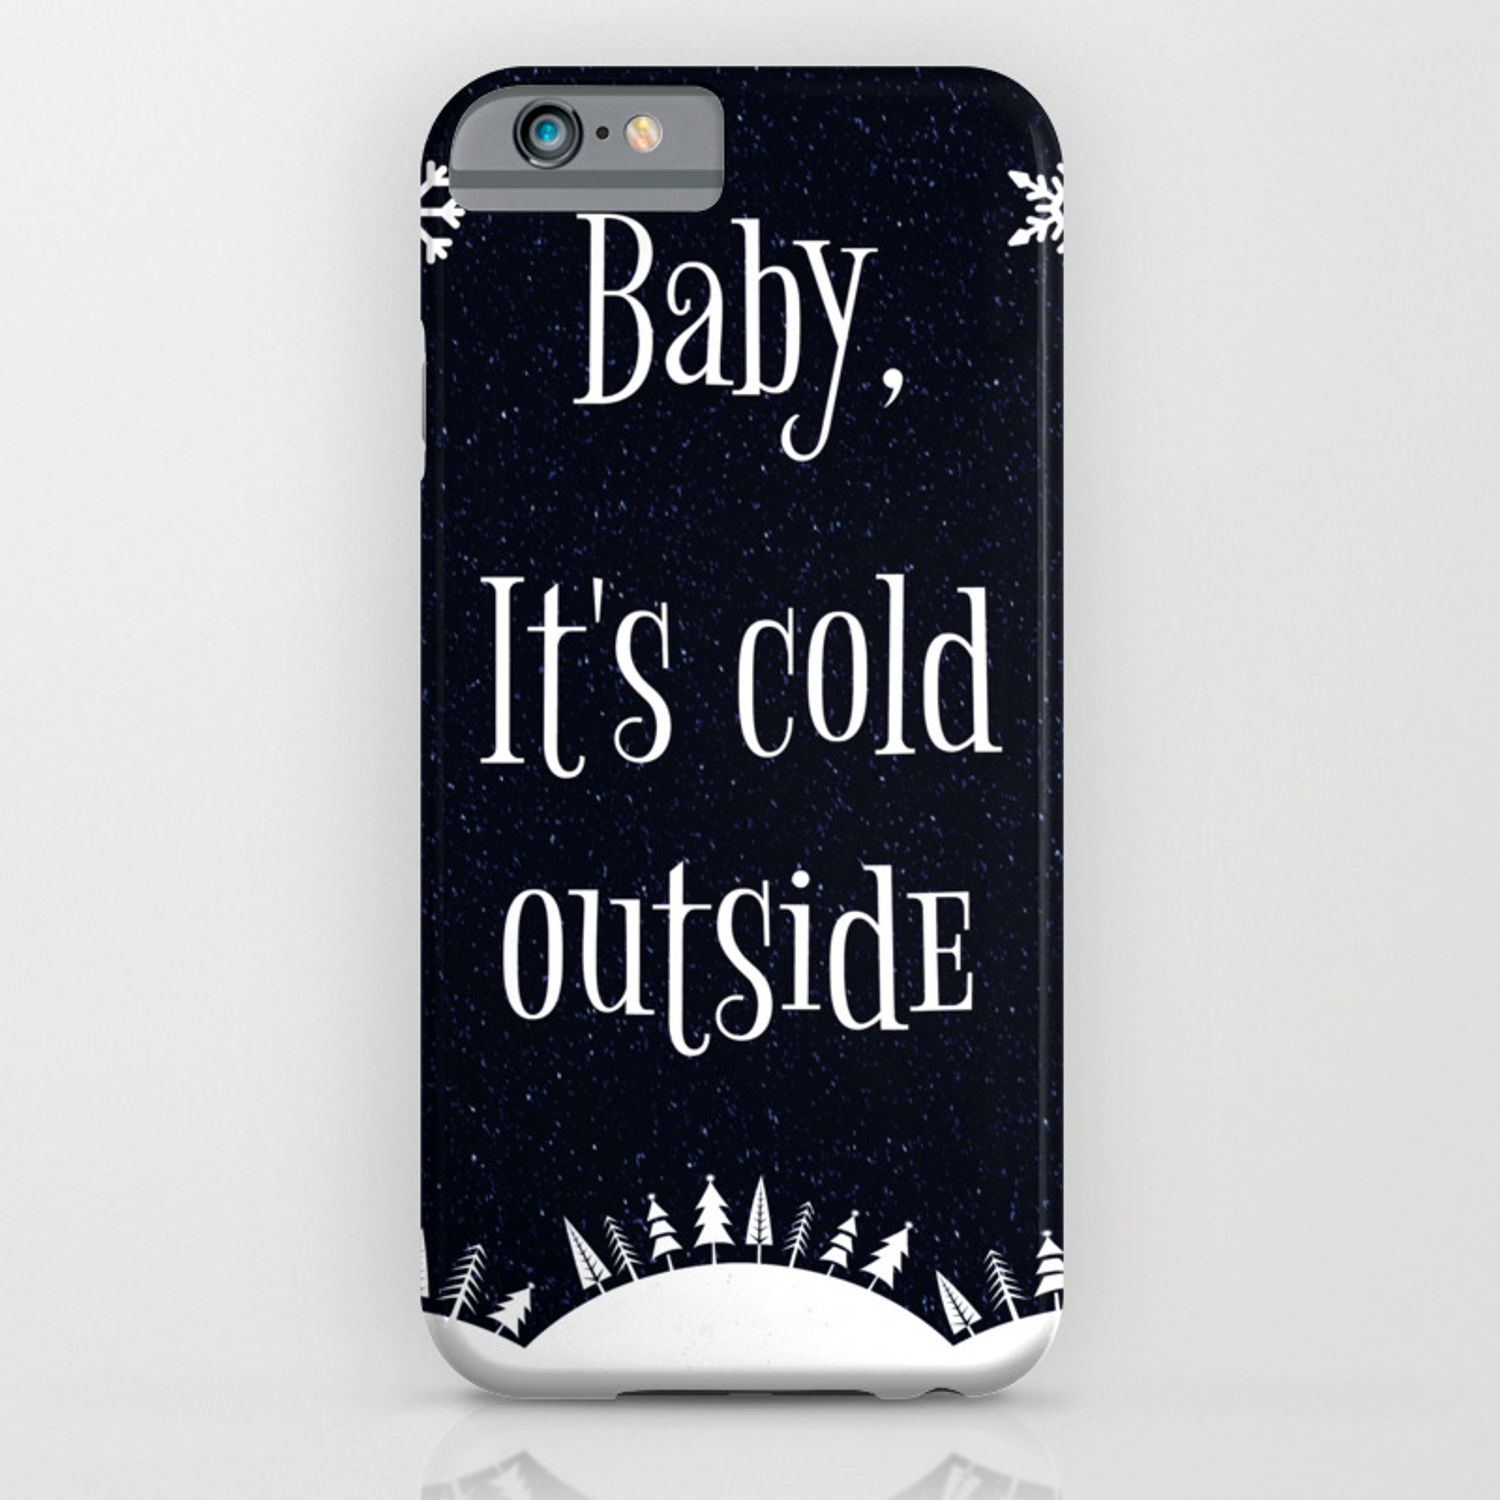 new product 8b0f0 f6445 Baby, It's Cold Outside iPhone Case